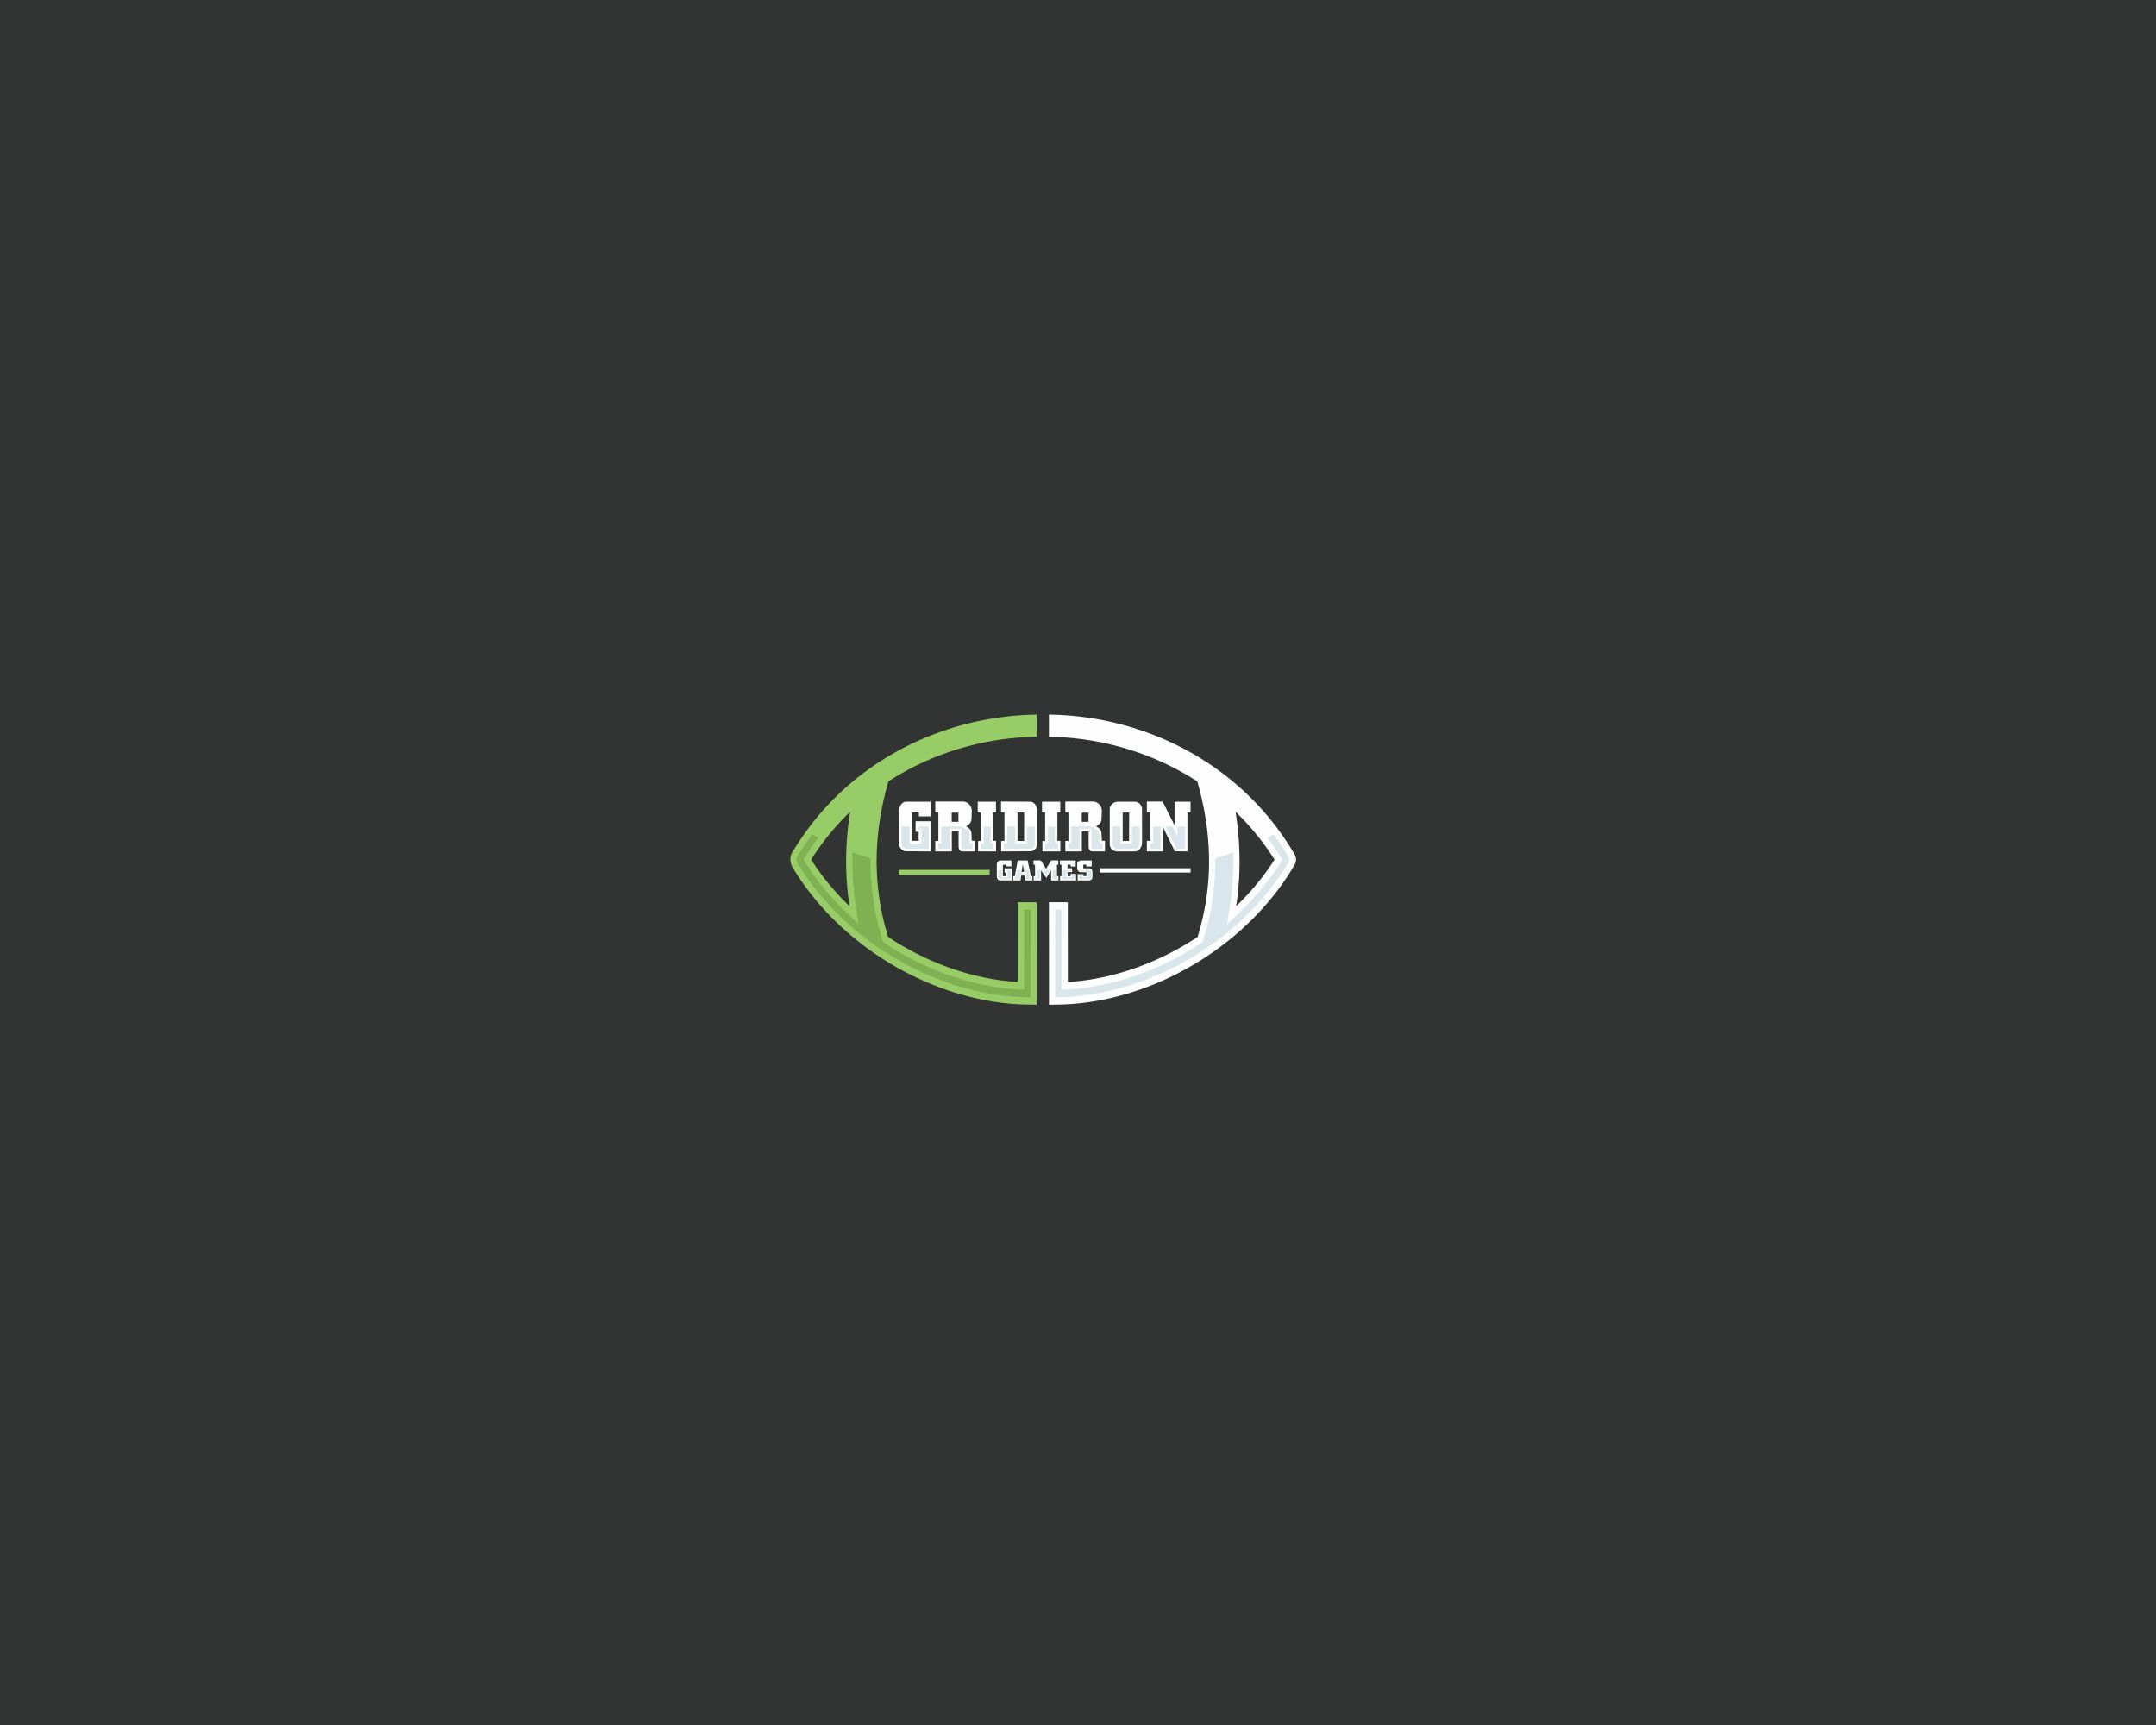 Help Gridiron Games create the first logo for our football pool website!